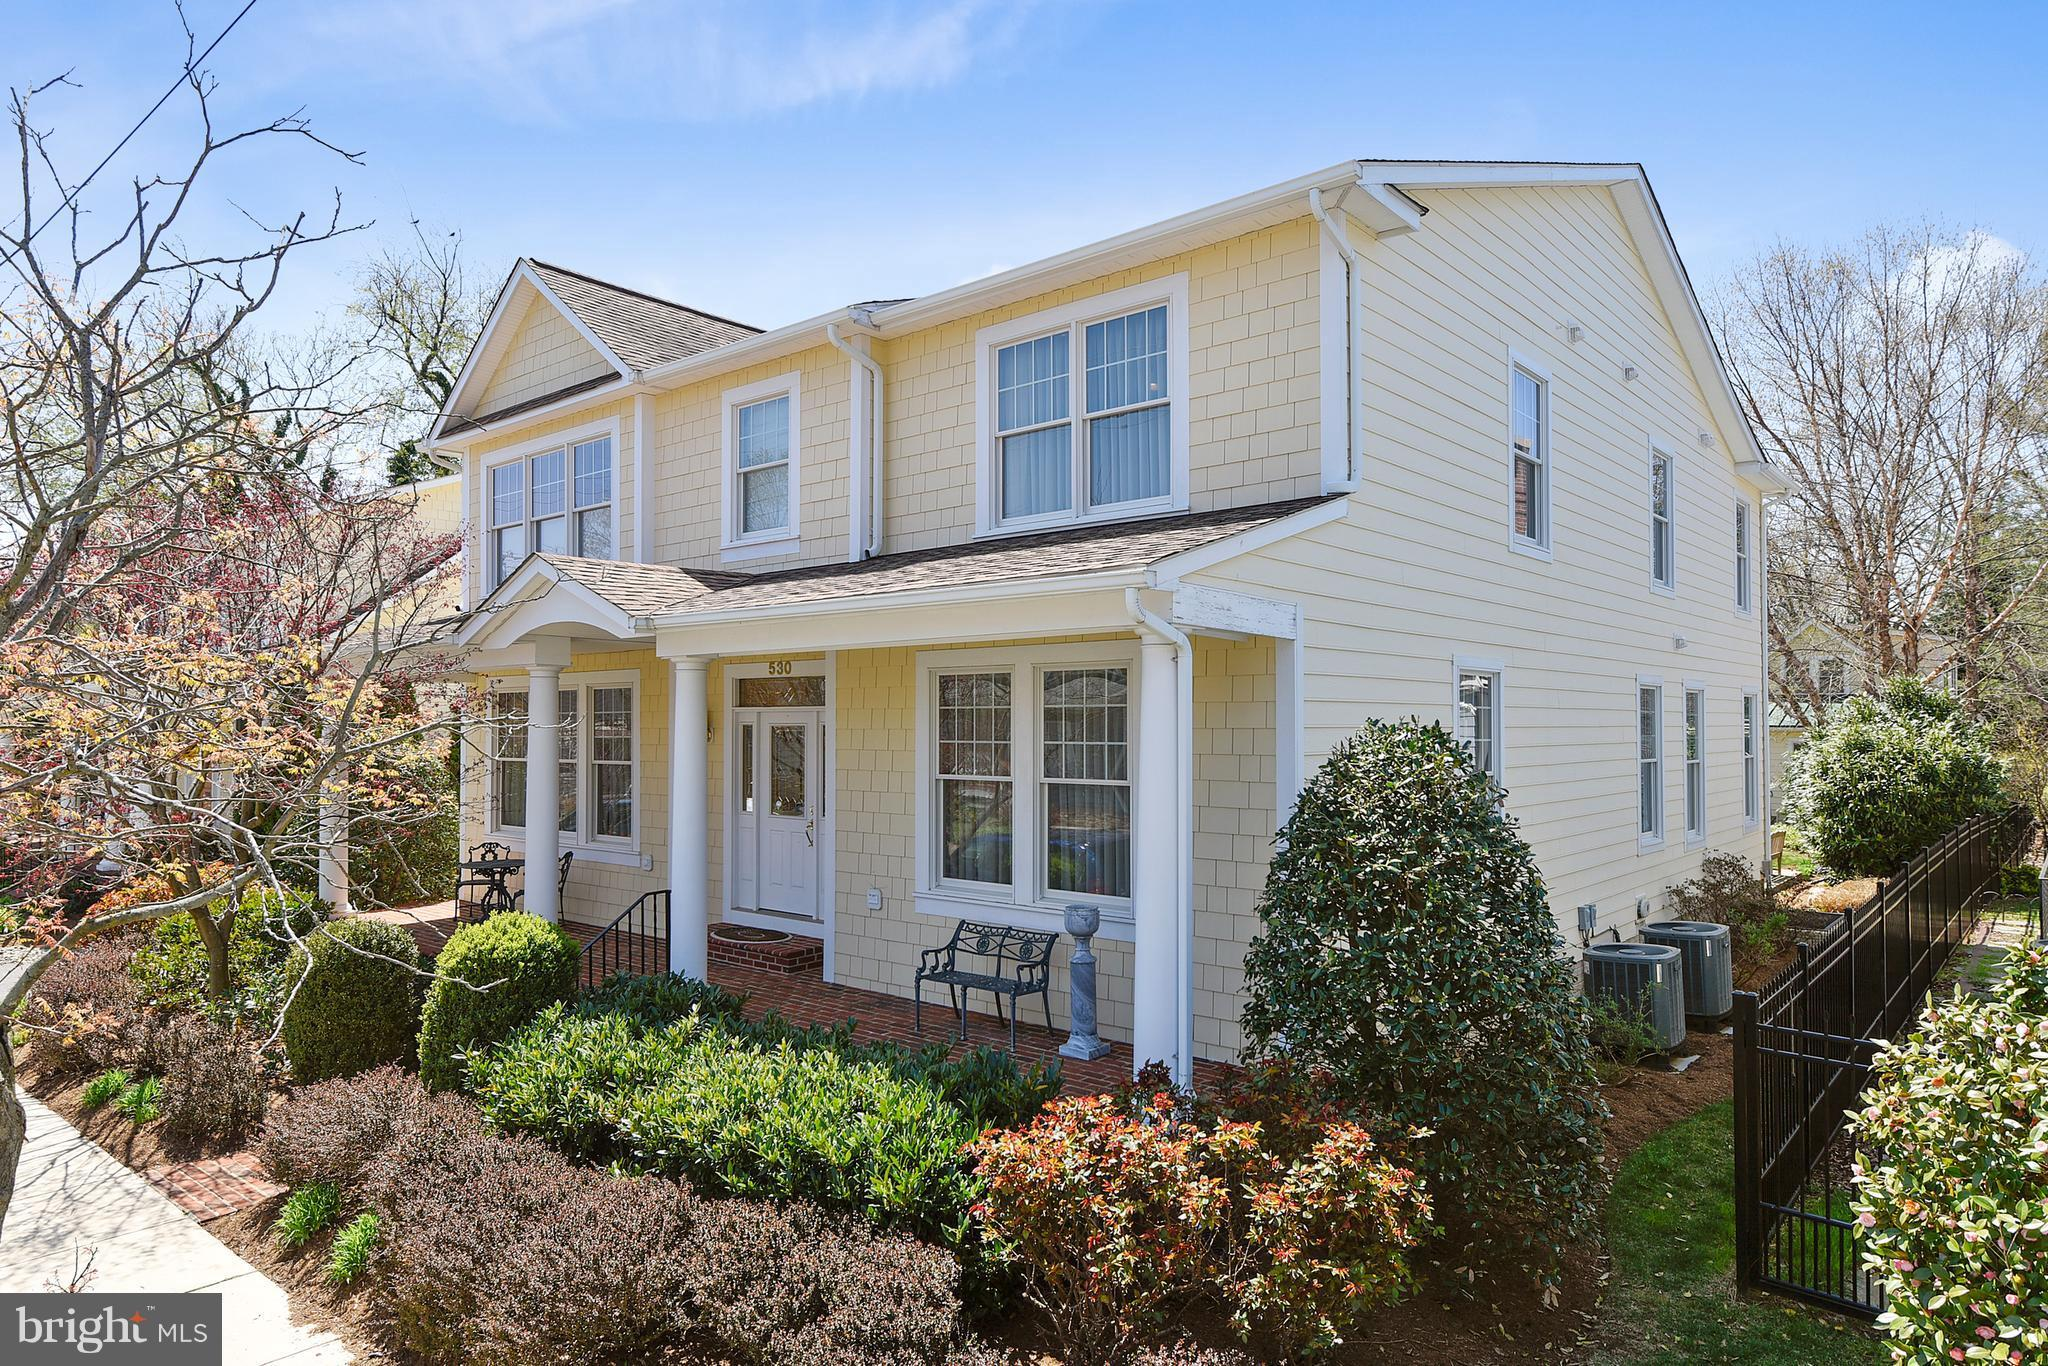 530 SECOND STREET, ANNAPOLIS, MD 21403